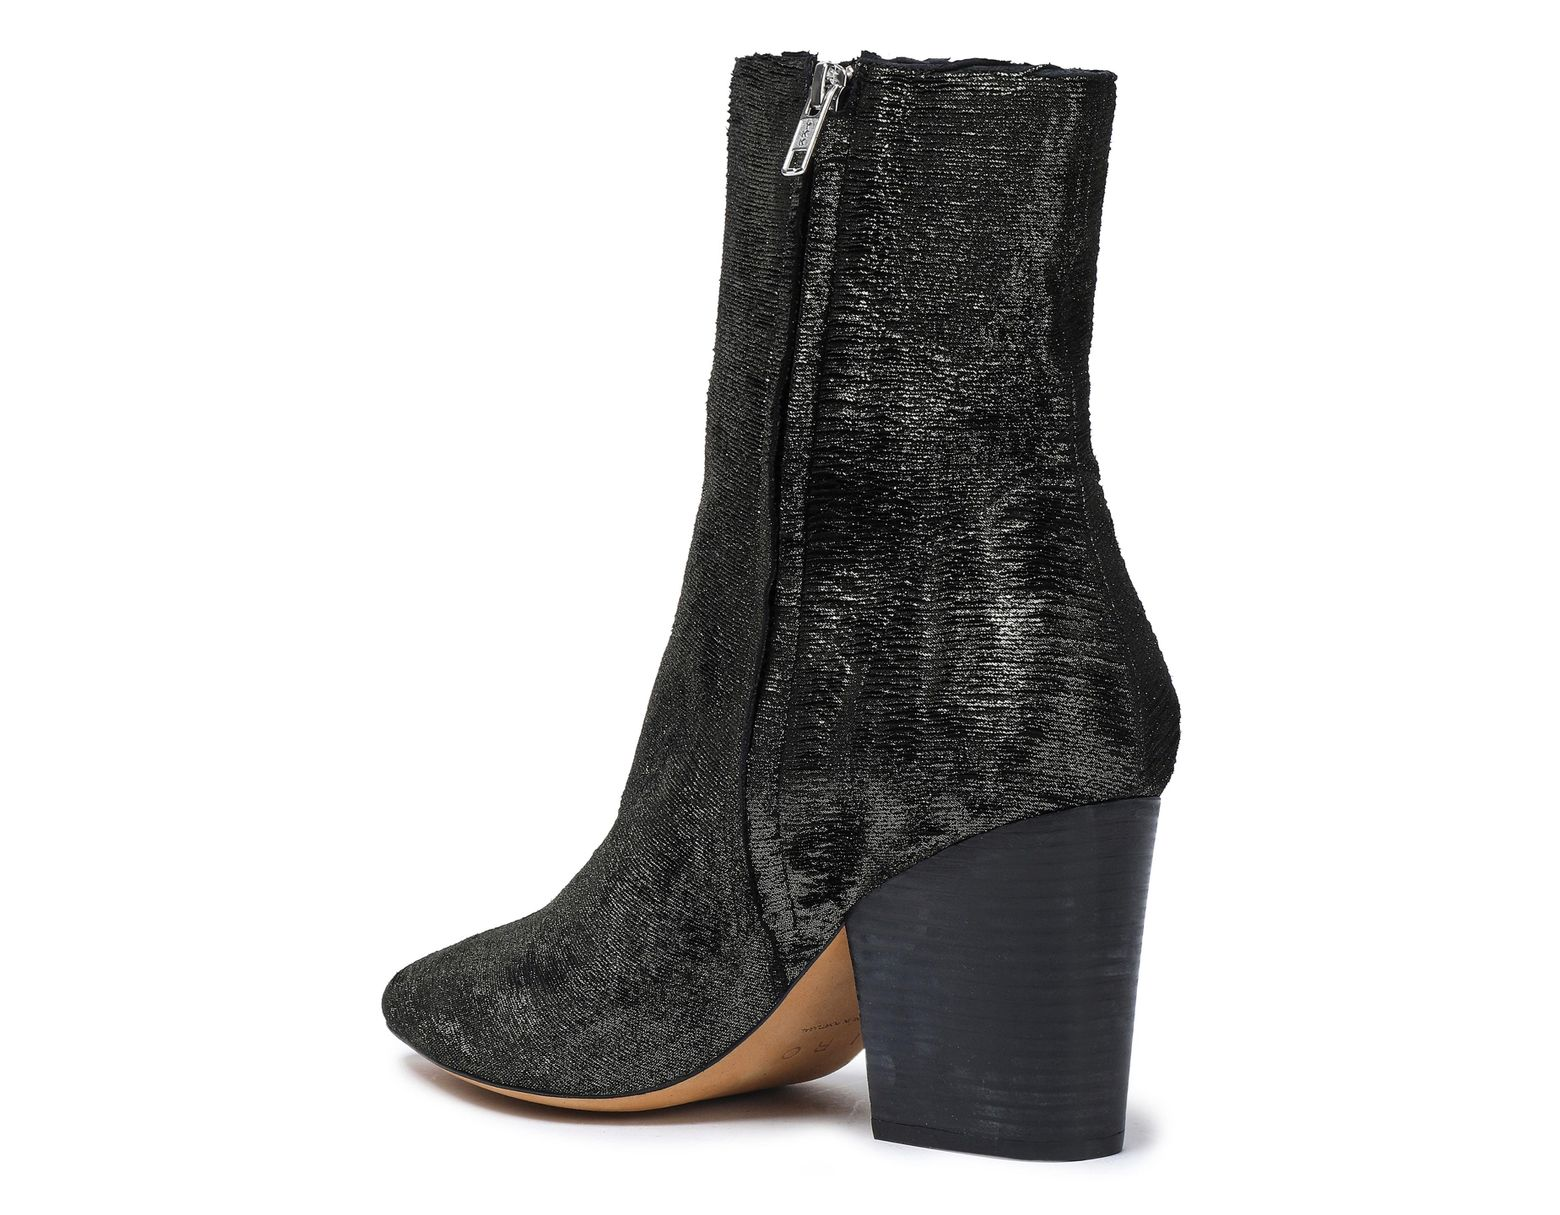 ccee5f63a1c Women's Ladilor Sliced Metallic Suede Ankle Boots Black